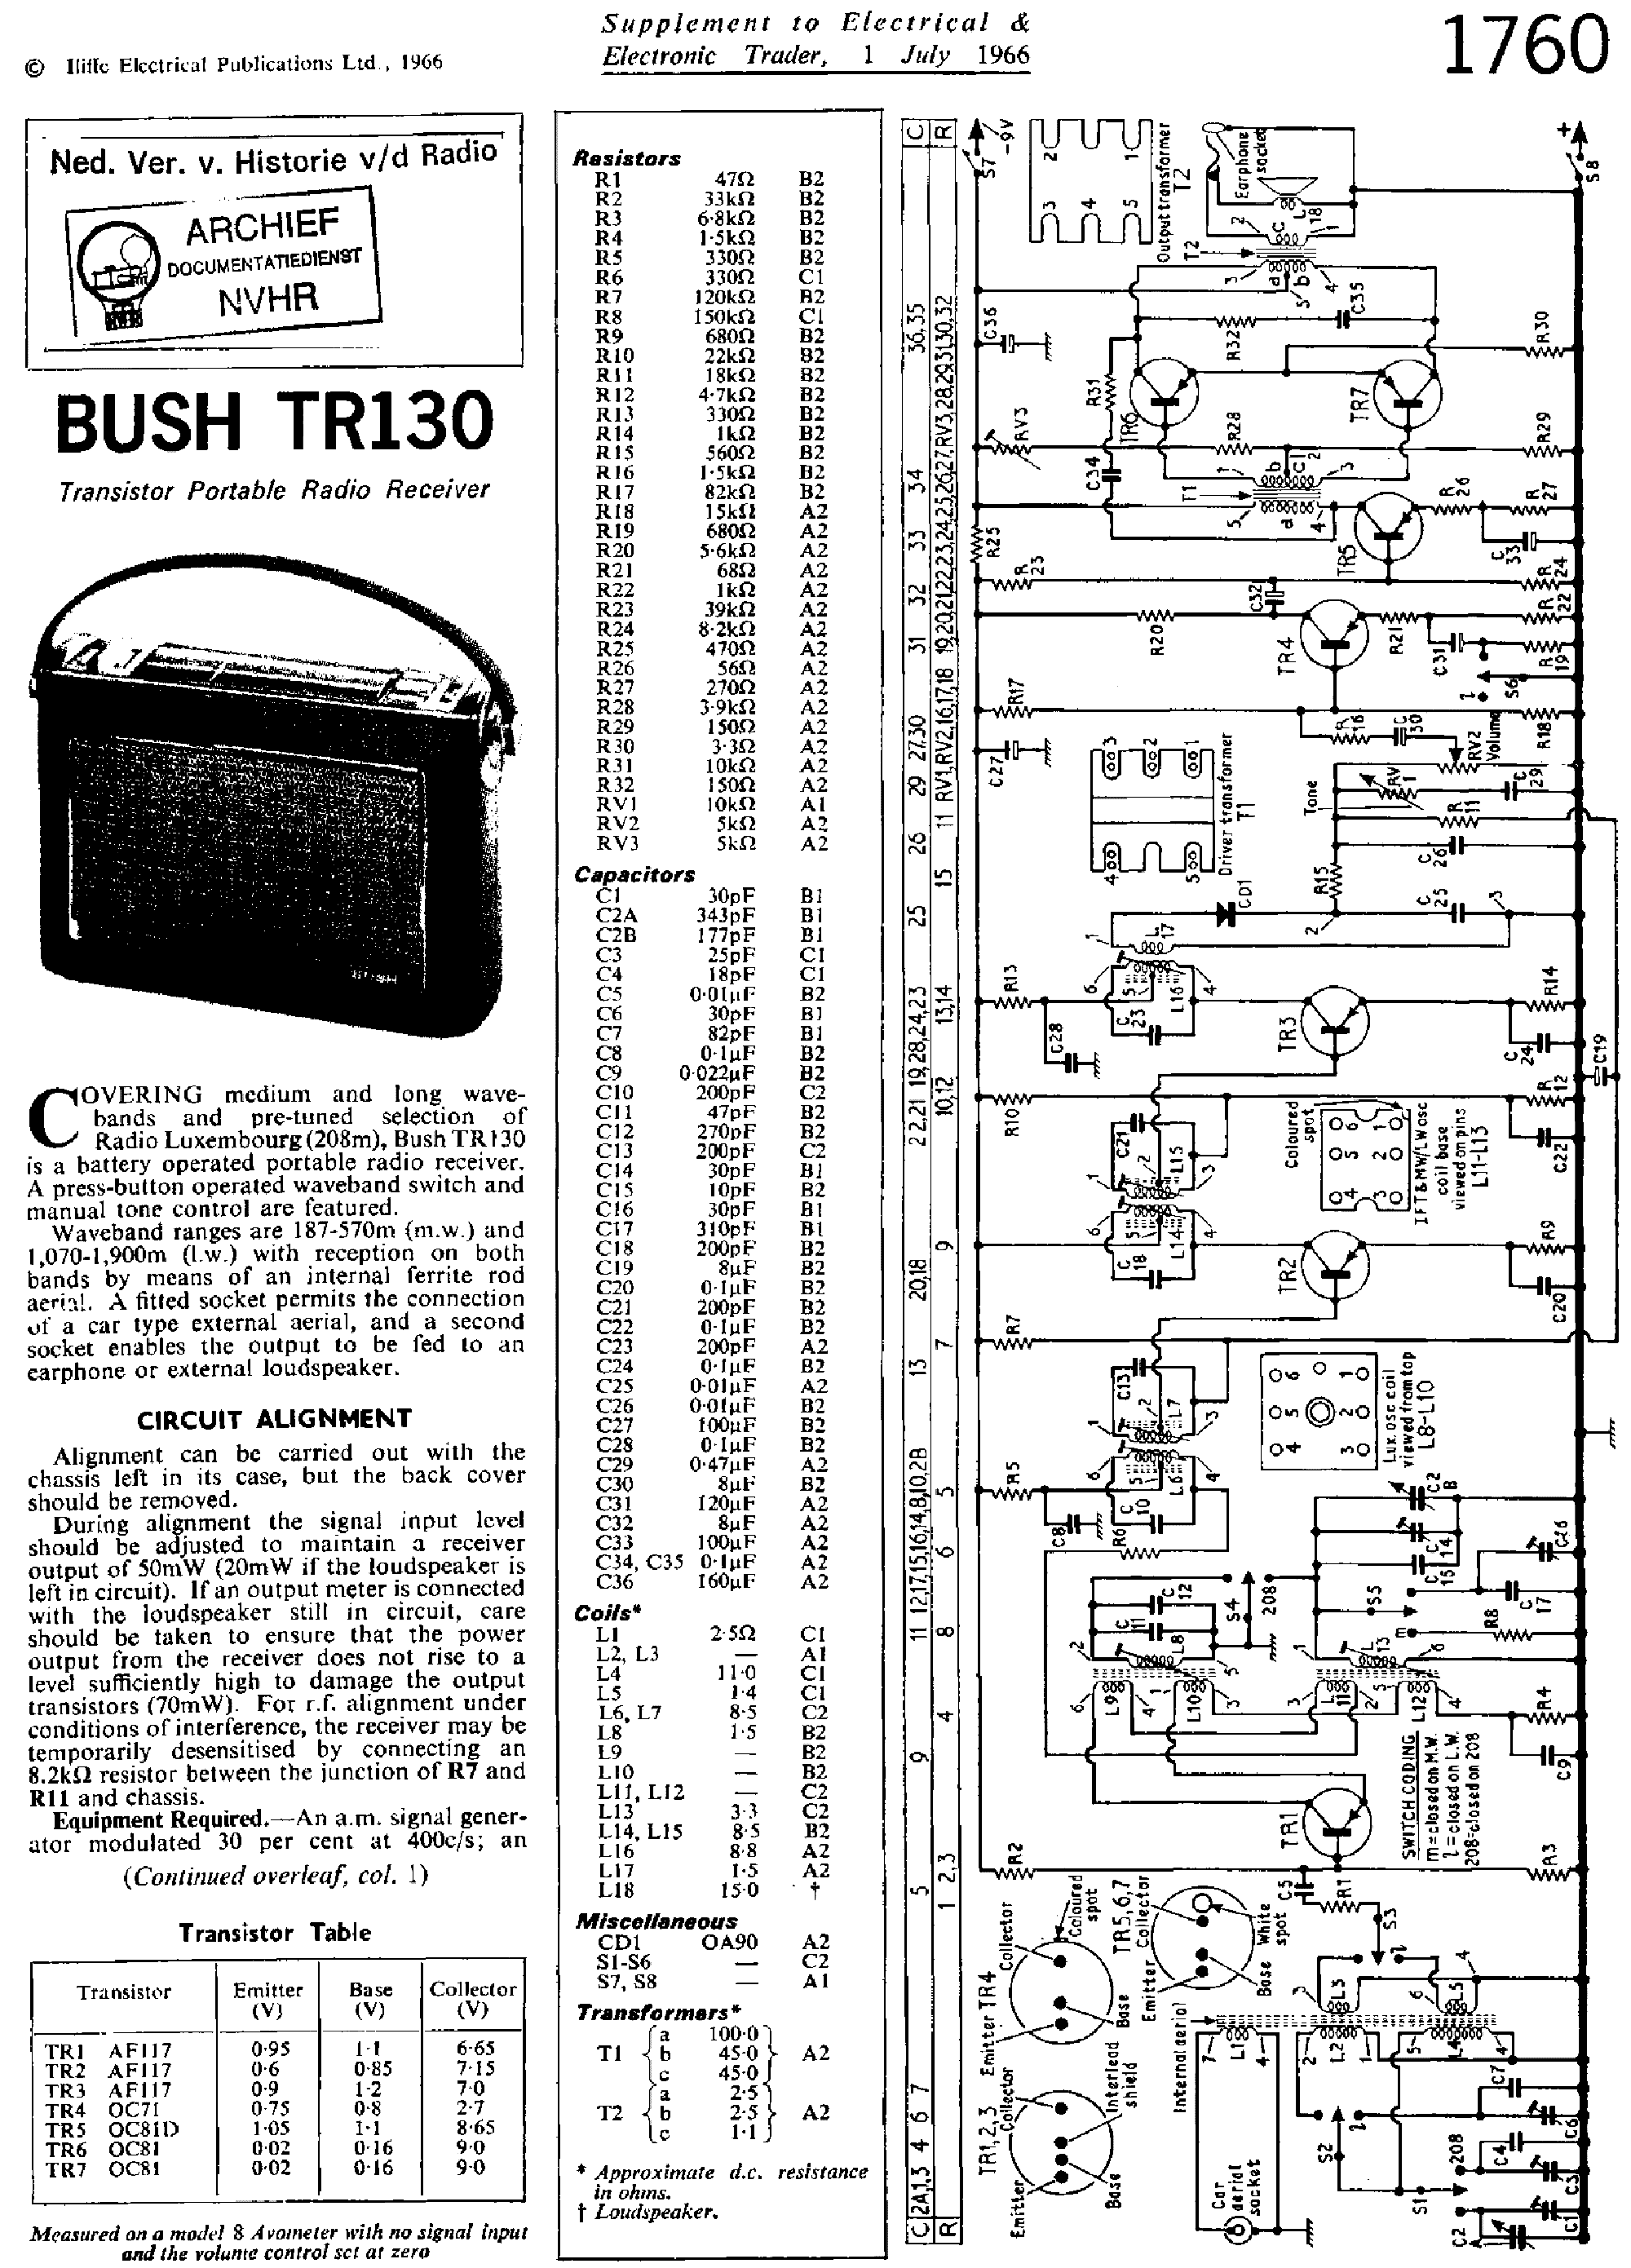 bush tr130 transistor portable receiver 1966 sm service manual rh elektrotanya com bush dishwasher repair manual bush dishwasher repair manual